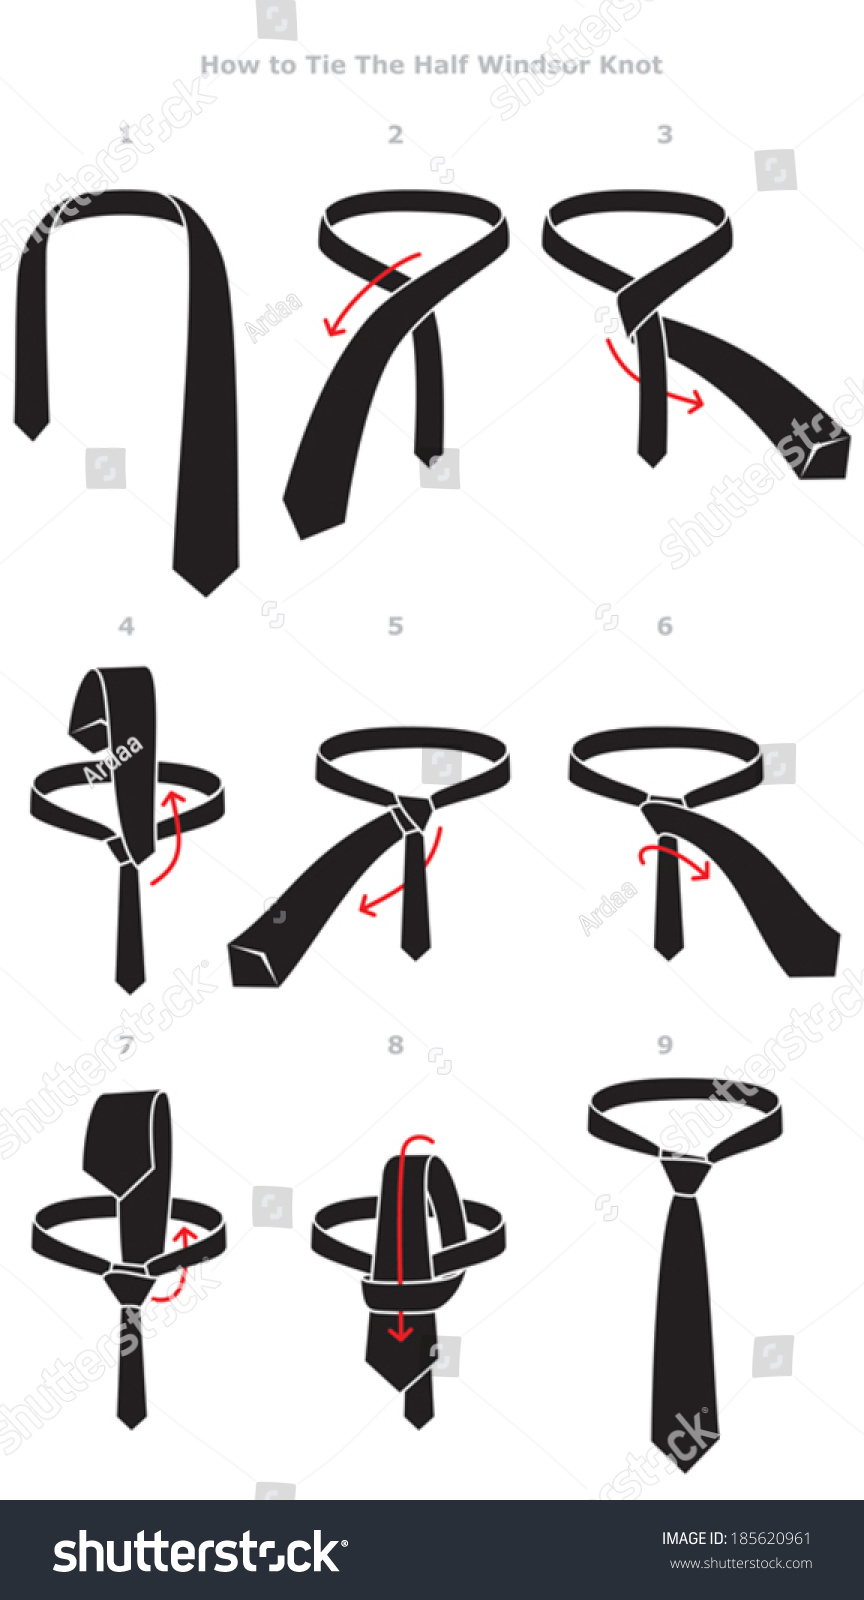 Half Windsor Knot Tying Instructions Stock Vector Royalty Free How To Tie A